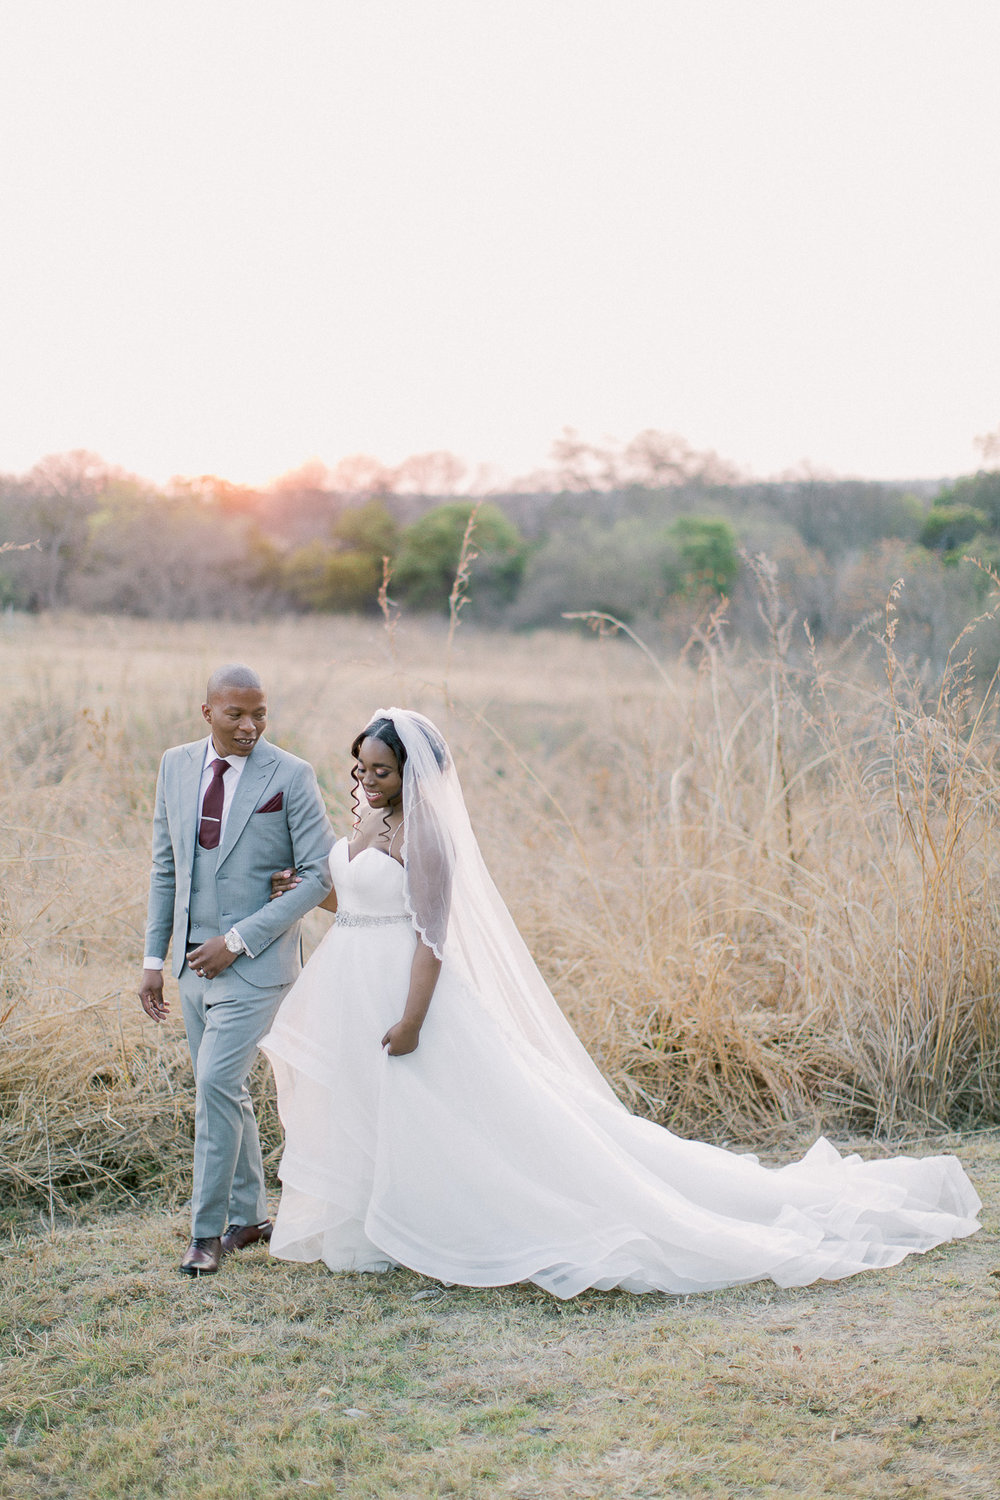 lerato & tumiso - WEDDING